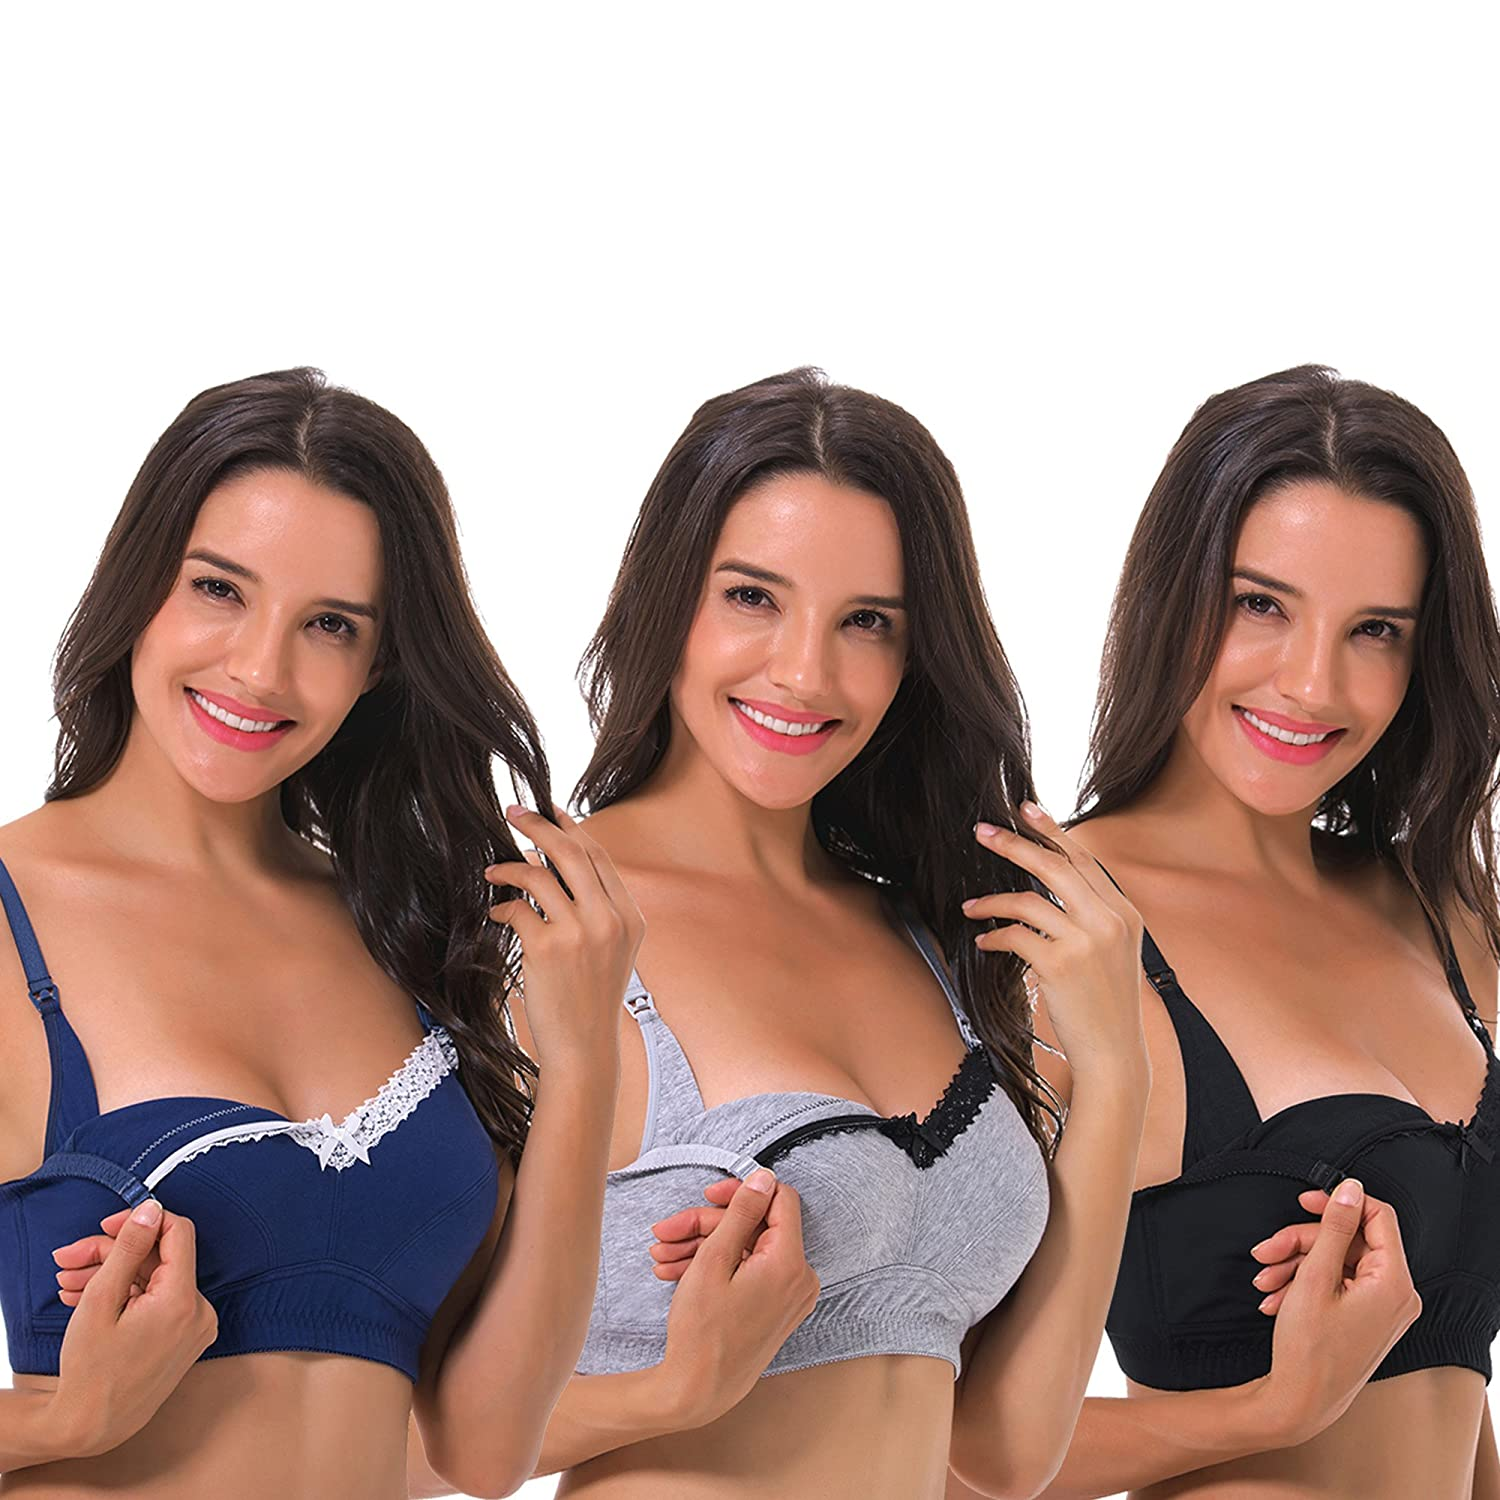 Curve Muse Women's Nursing Plus Size Wirefree Cotton Bra with Upper Lace-3Pack BPMC70803